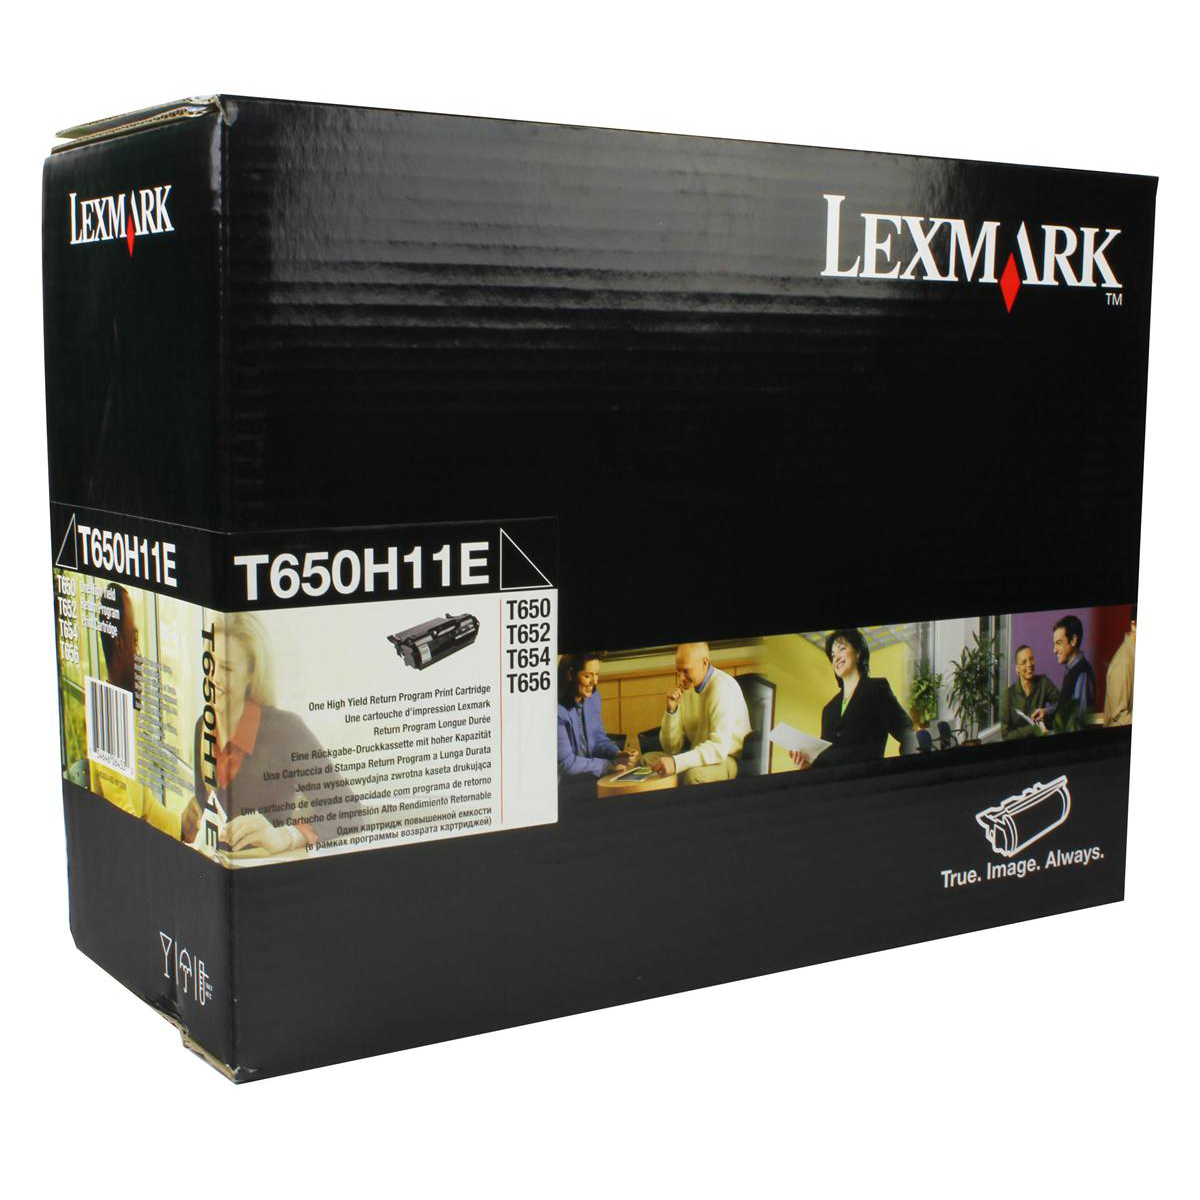 Lexmark Laser Toner Cartridge High Yield Page Life 25000pp Black Ref T650H11E